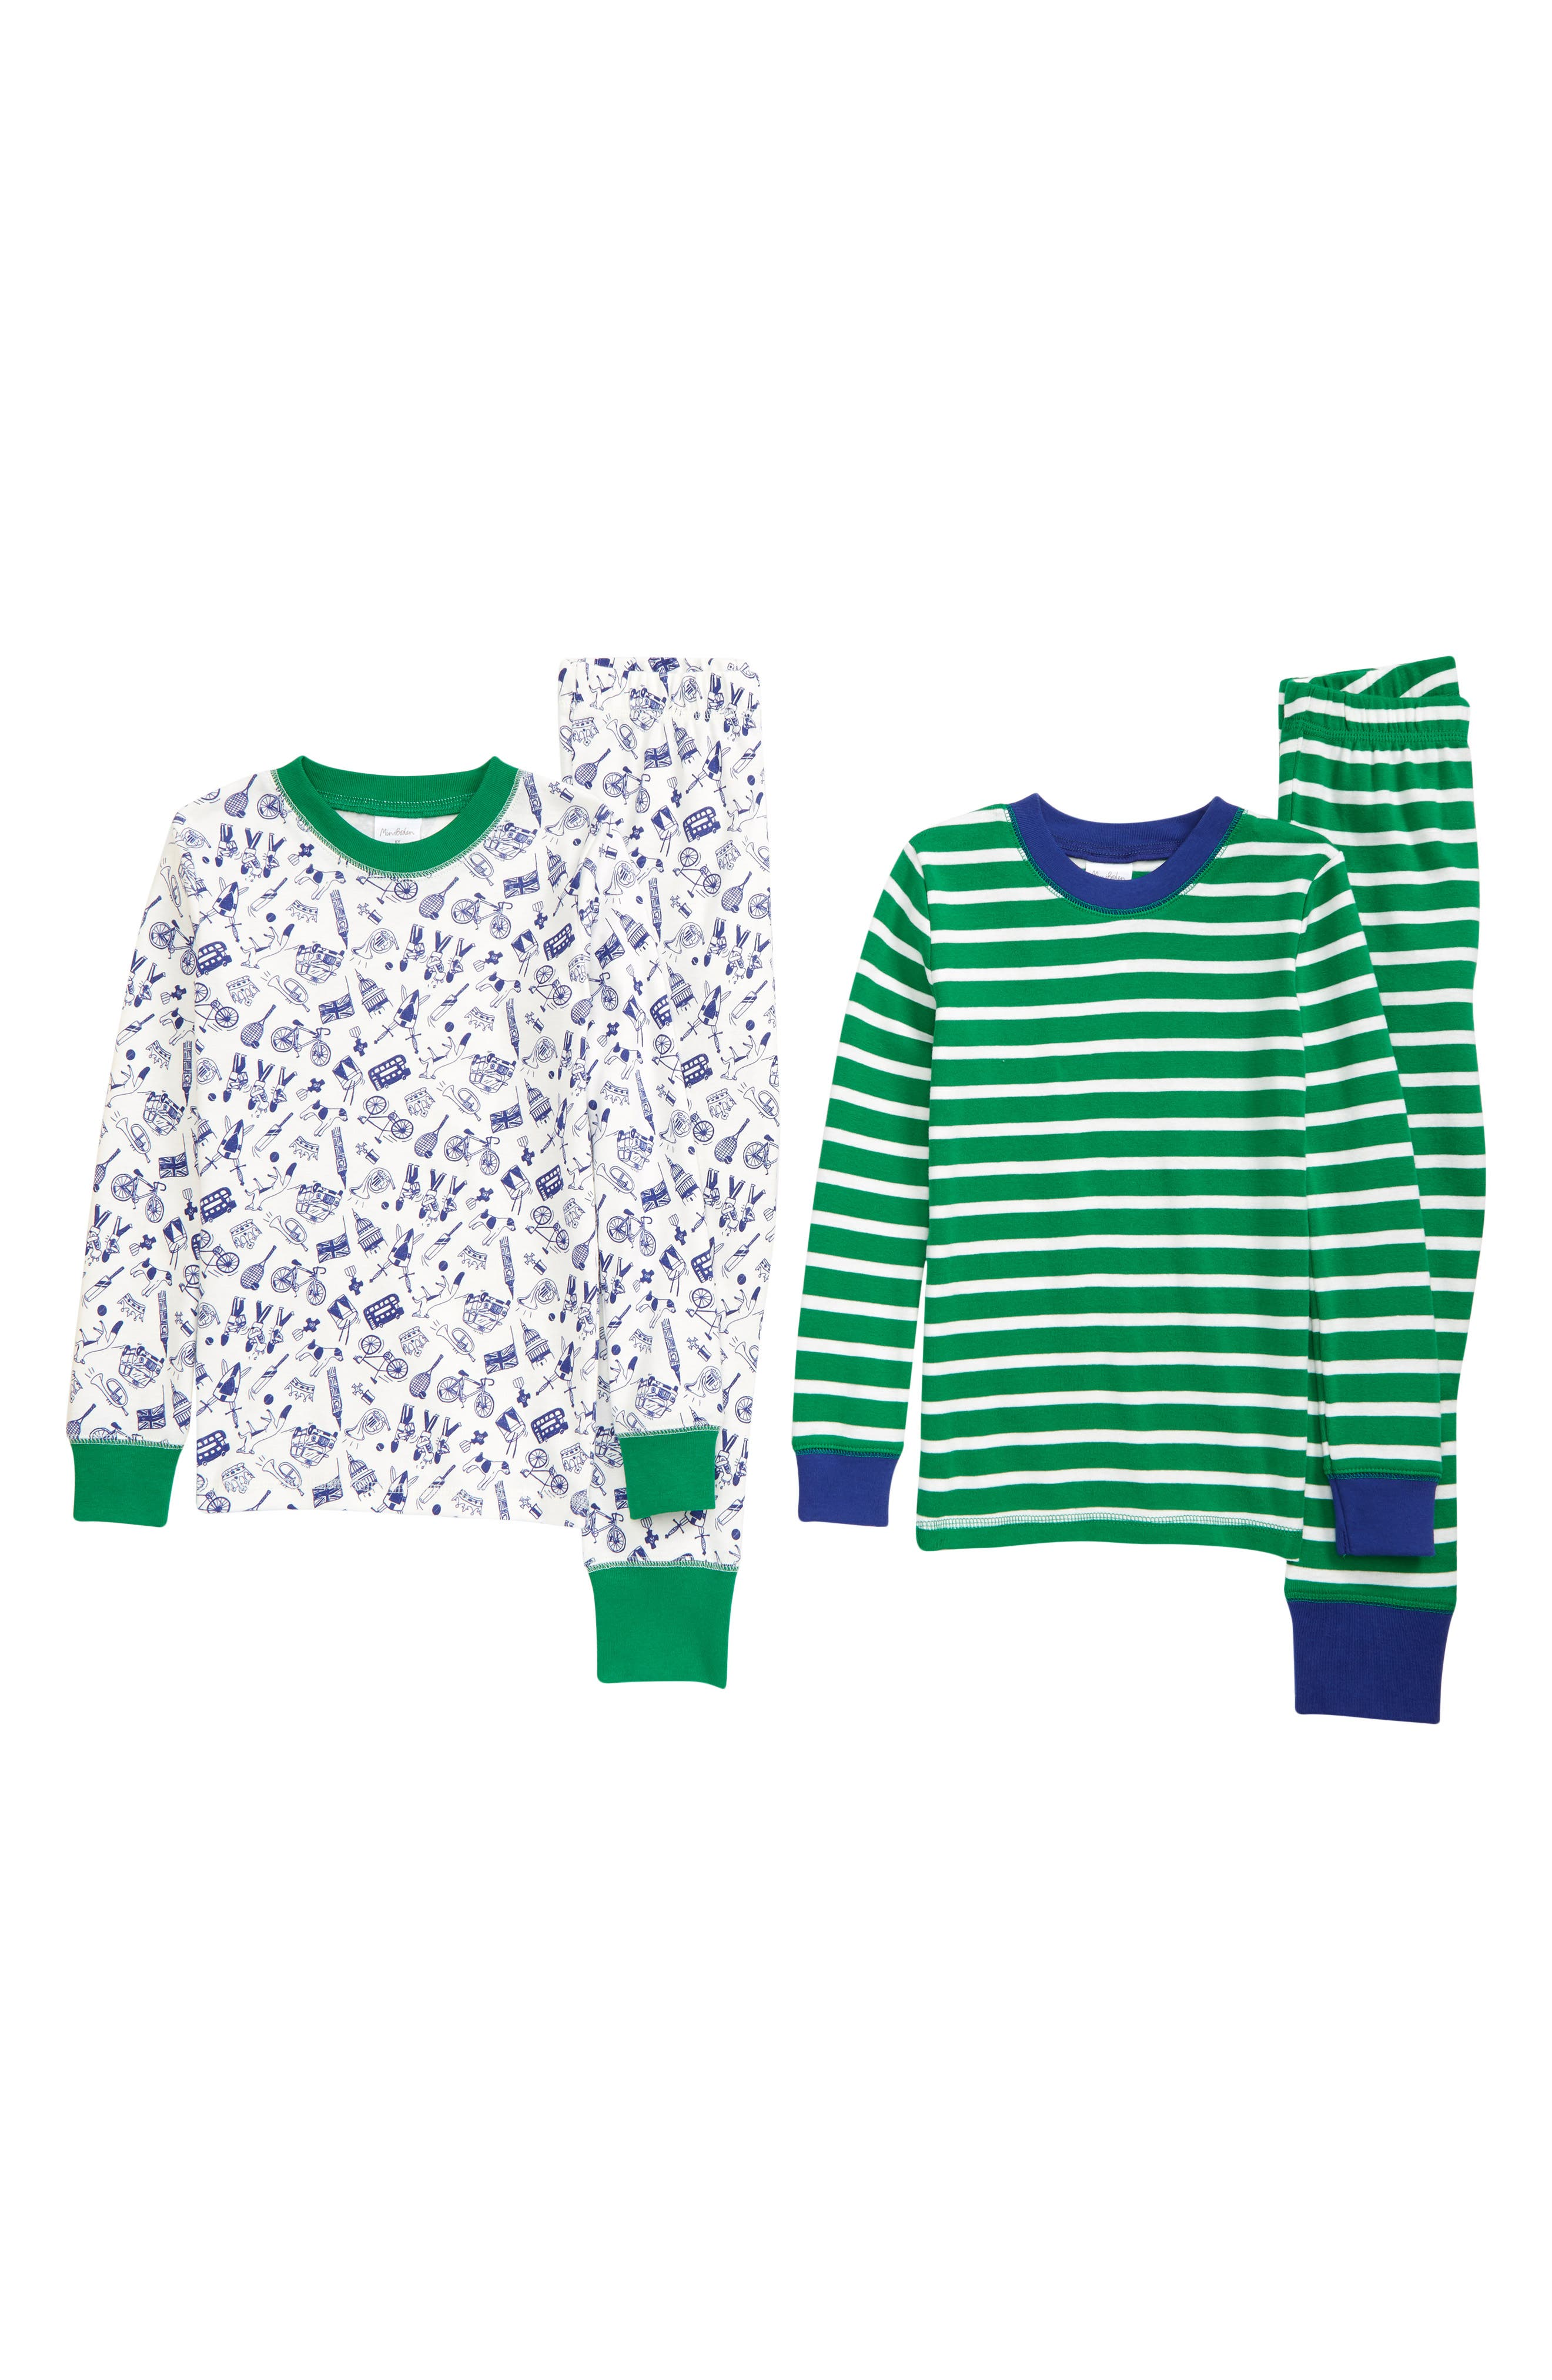 London-inspired graphics and bold stripes mix and match for cozy sleeping in a twin pack of two-piece cotton pajamas. Style Name: Mini Boden 2-Pack Fitted Two-Piece Pajamas (Toddler, Little Boy & Big Boy). Style Number: 6102231. Available in stores.